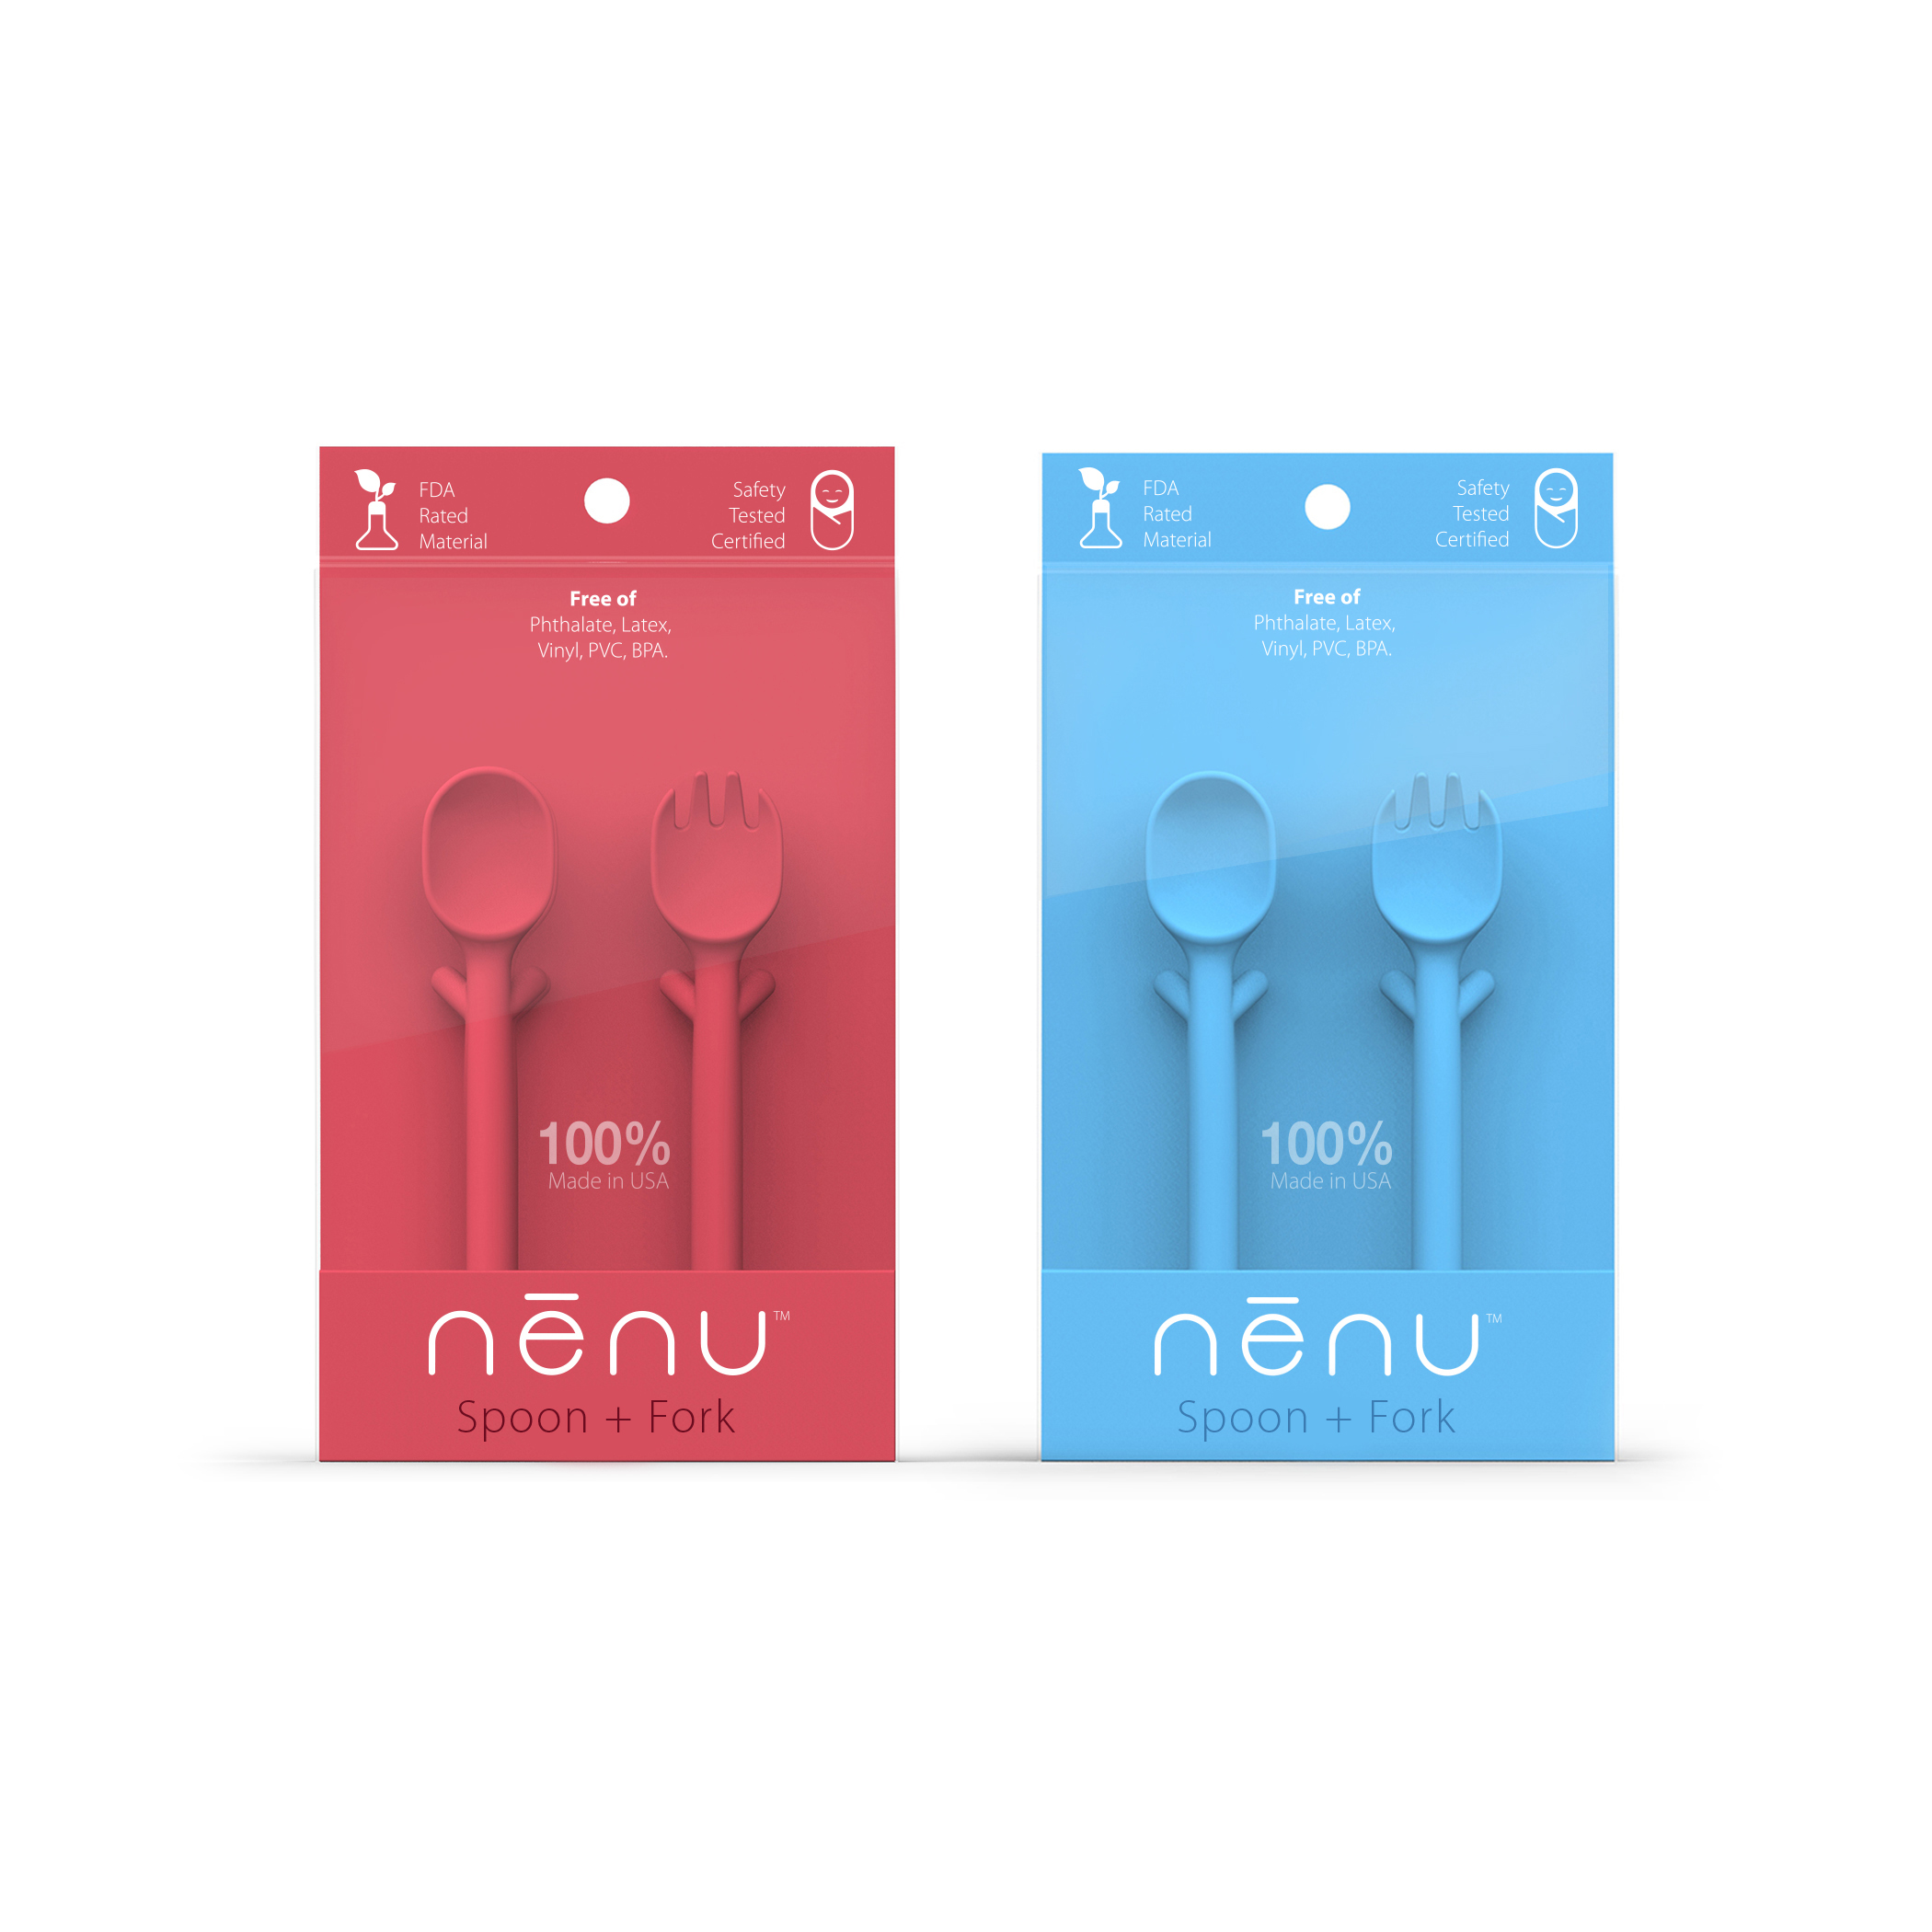 Nenu baby spoon and fork, made in the USA, safety tested